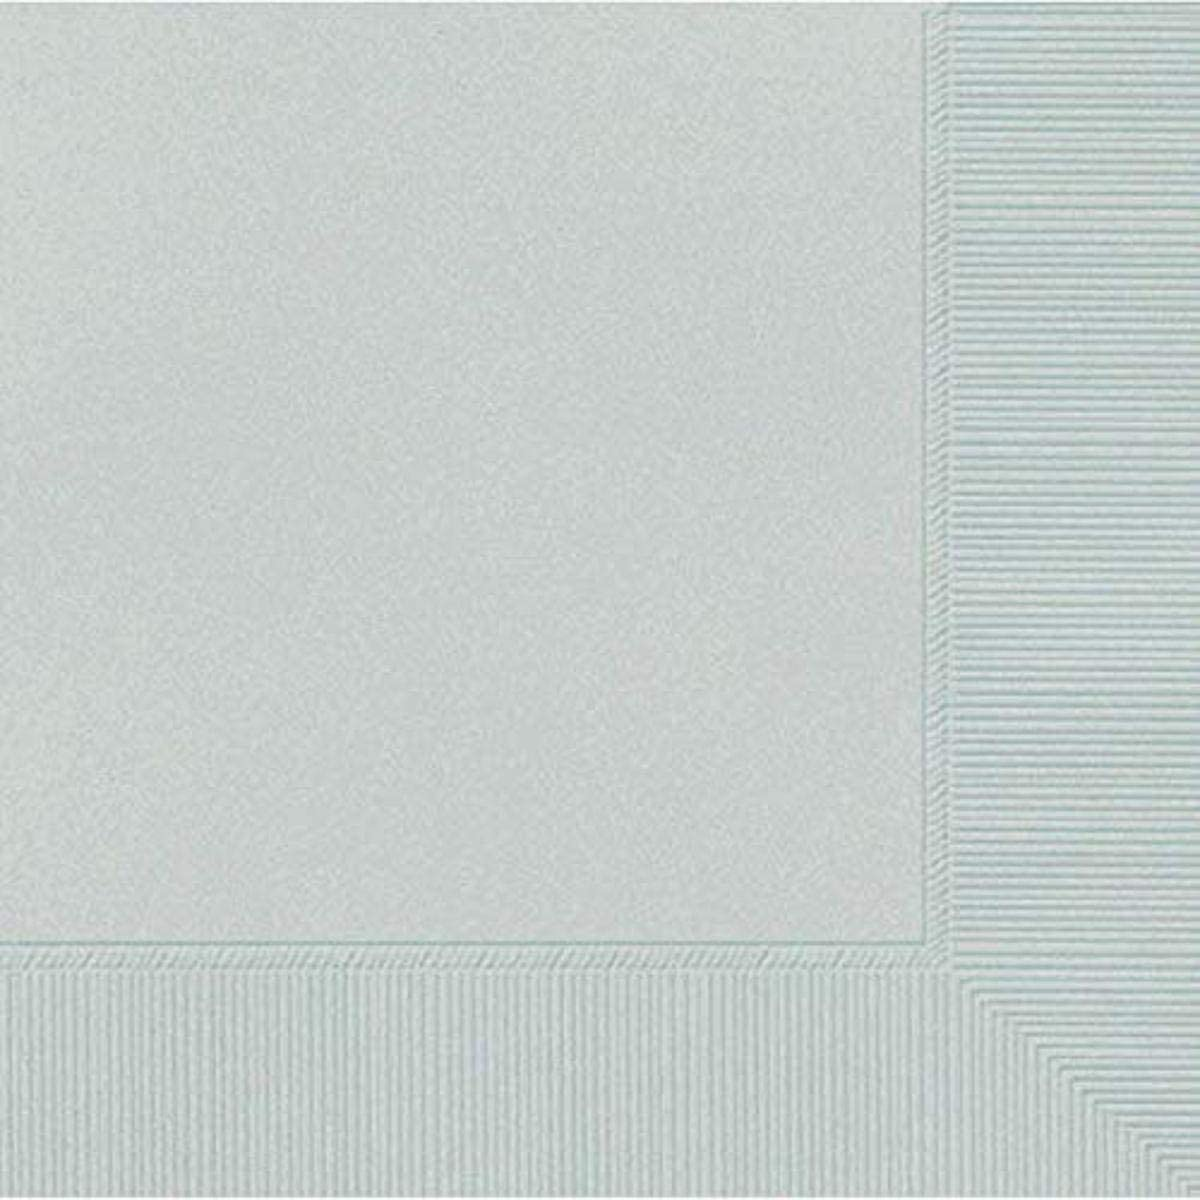 Silver 3-Ply Beverage Napkins | Party Supply | 240 ct.